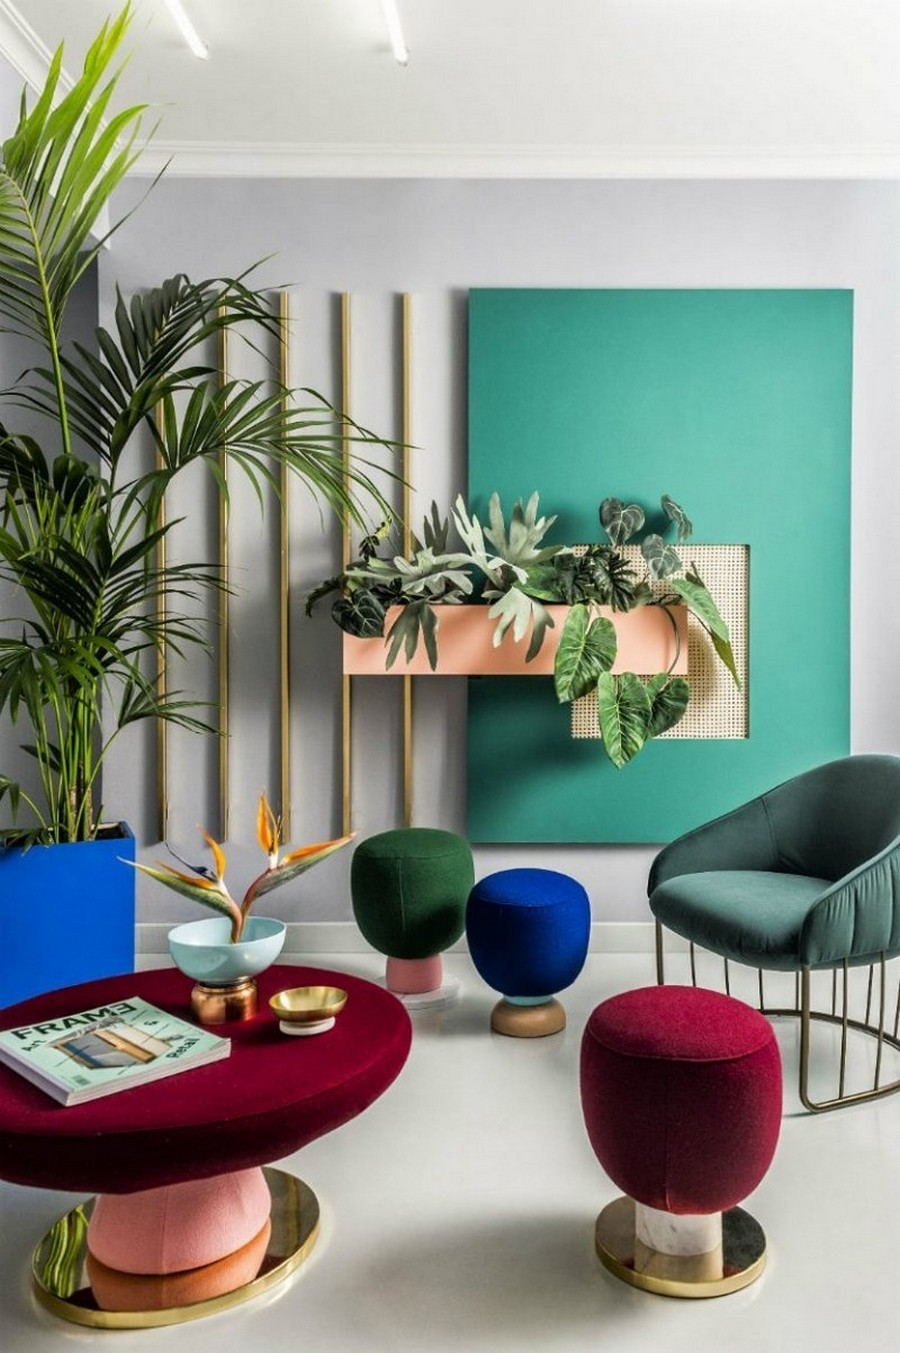 7 Interior Design Trends That Are Going To Be Popular In 2020 interior design trend 7 Interior Design Trends That Are Going To Be Popular In 2020 7 Interior Design Trends That Are Going To Be Popular In 2020 4